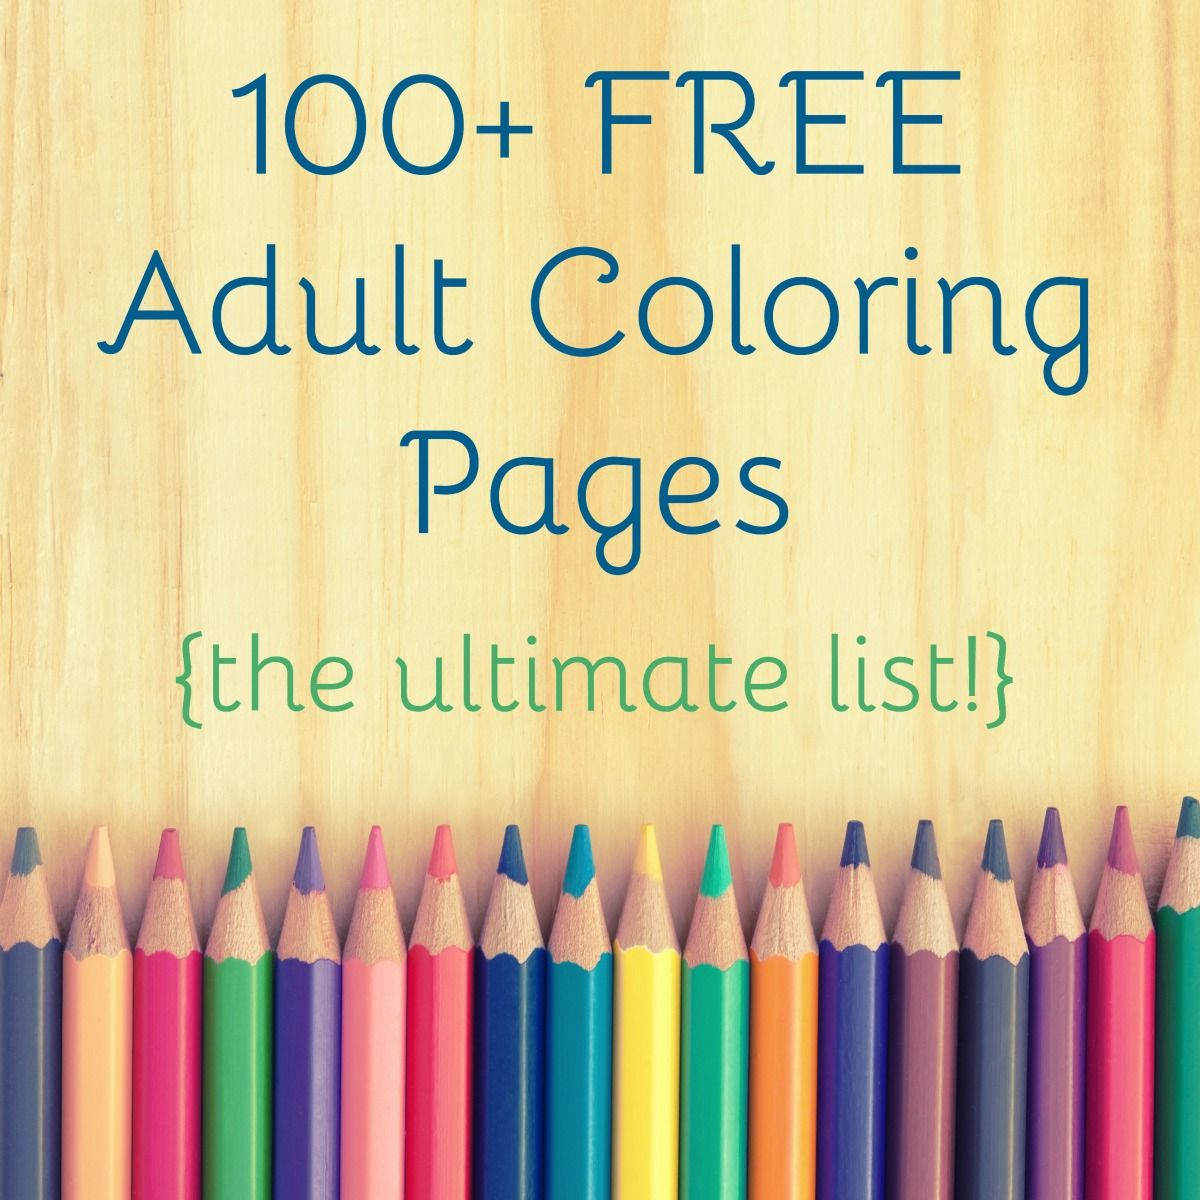 25 FREE Adult Coloring Pages | Free coloring and 100 free